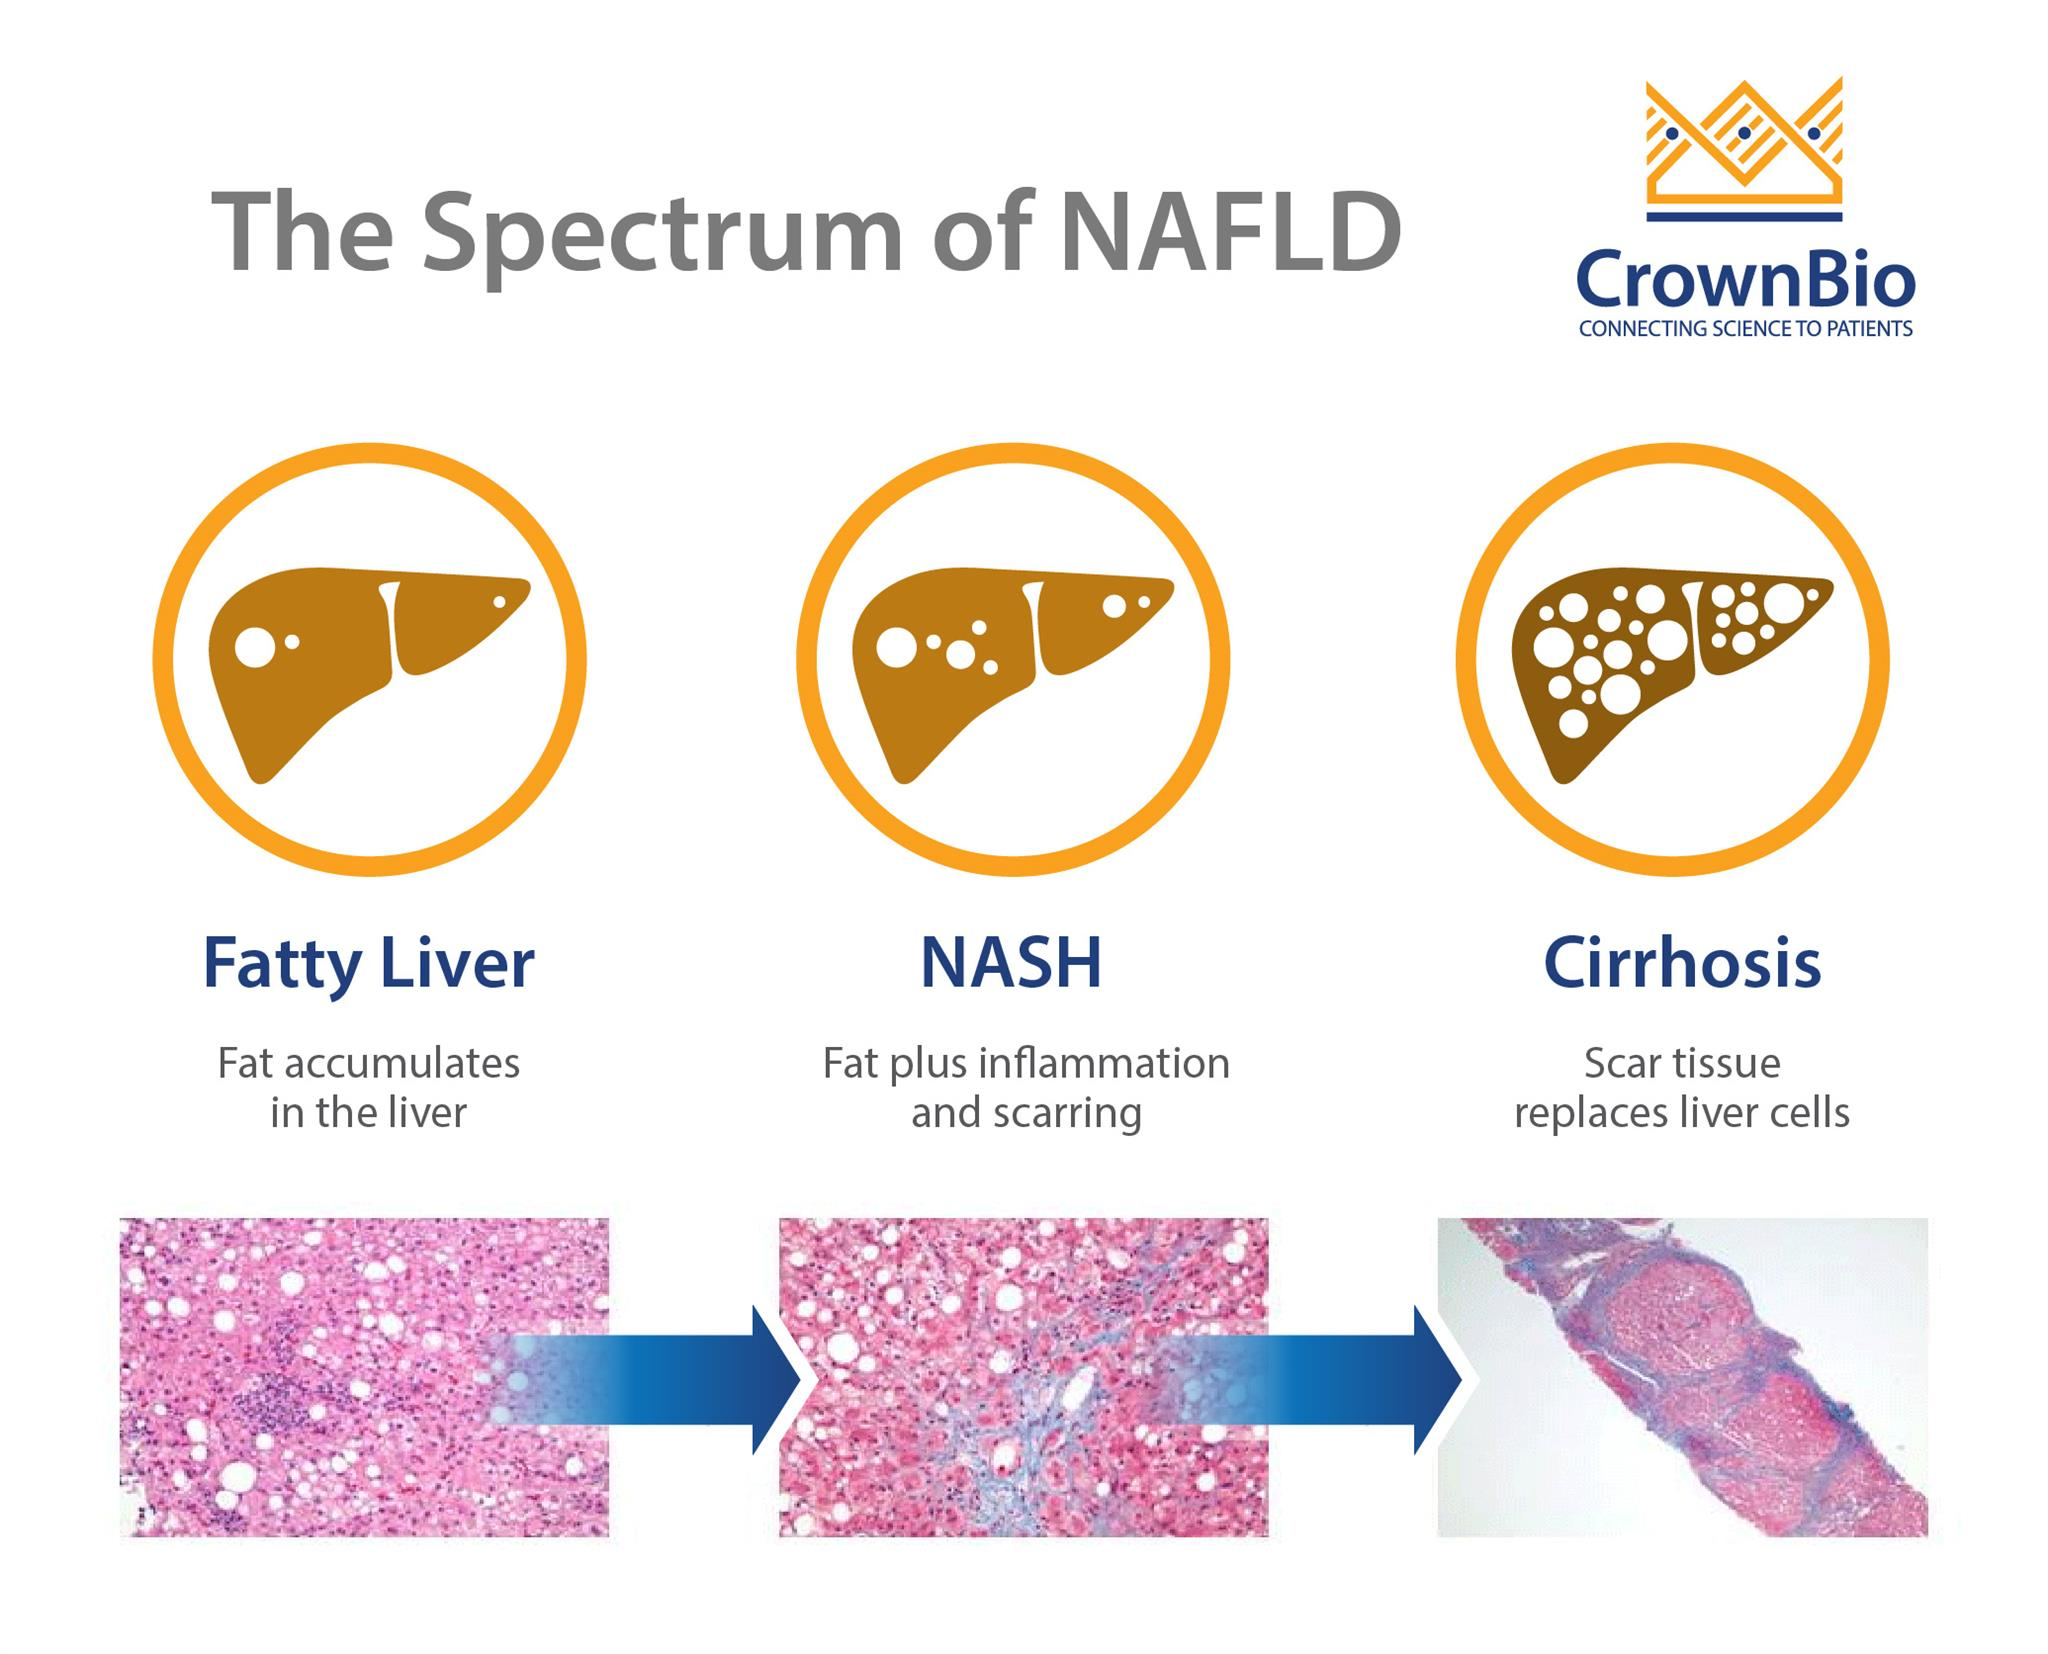 fatty liver progression, NAFLD progression to NASH, NASH diagnosis techniques, noninasive NASH diagnosis